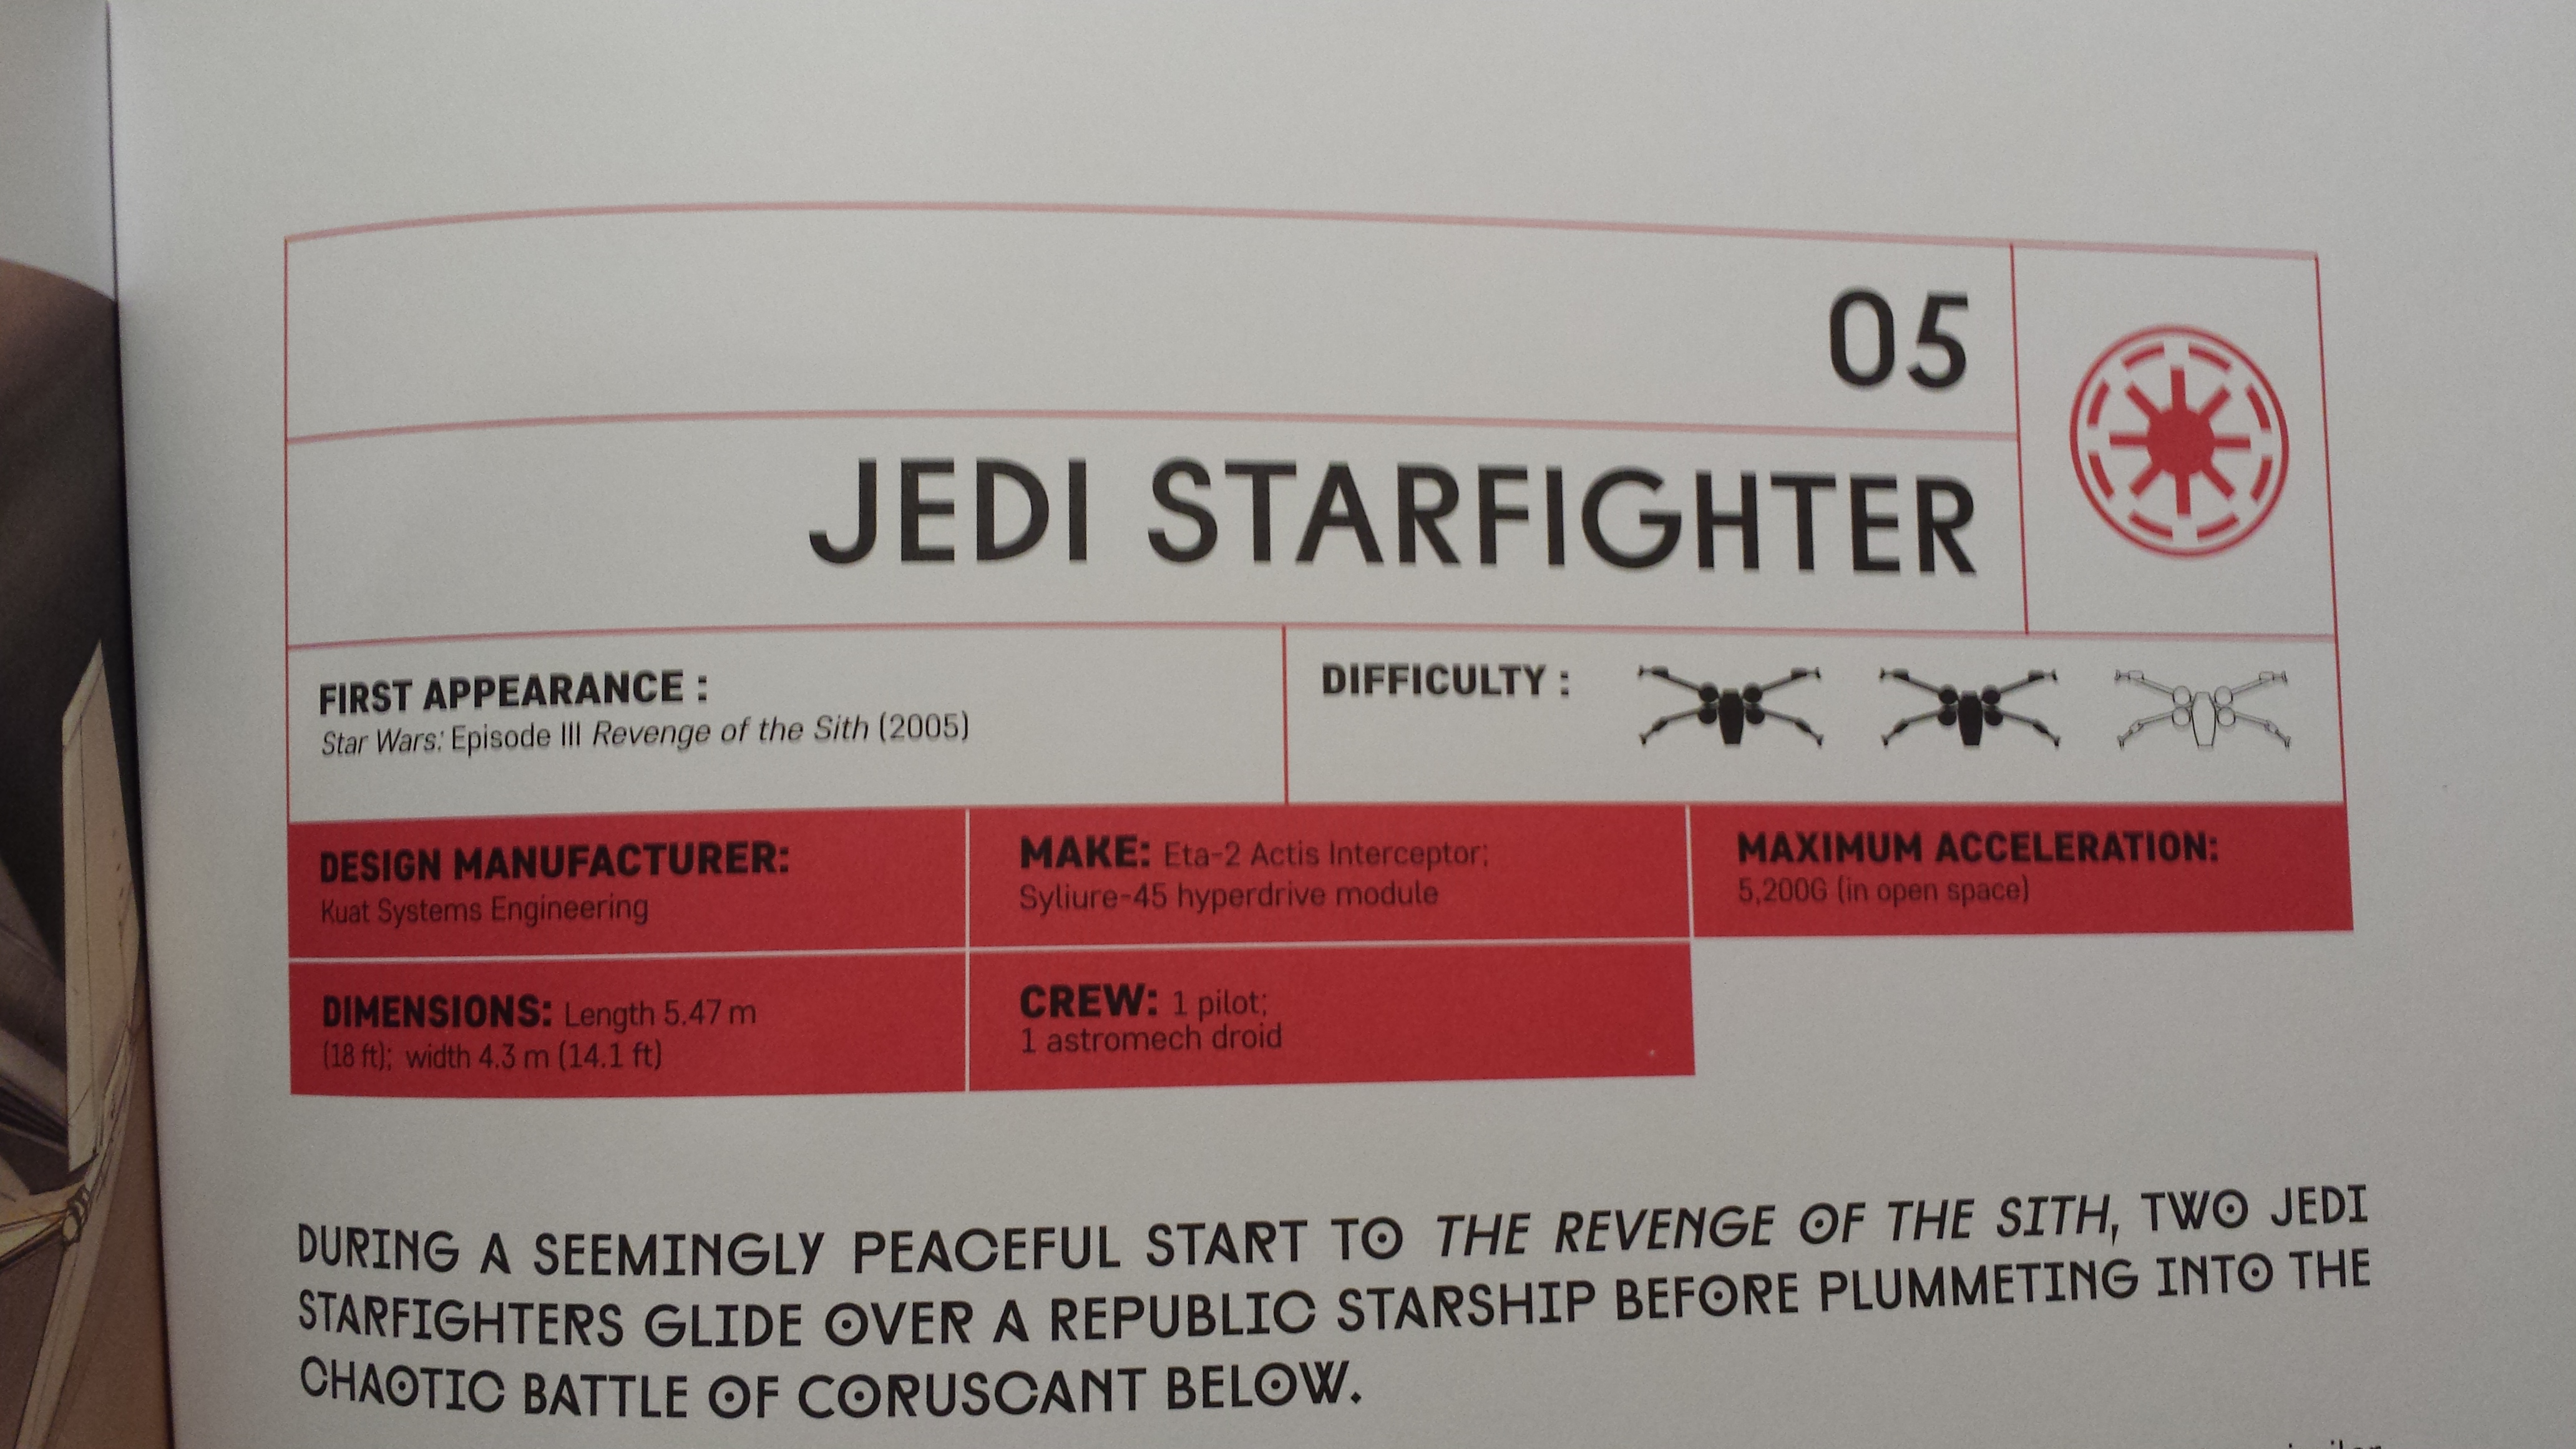 Review Celebrate The Ships Of Star Wars And Become A Paper Artist How To Fold An Origami Naboo Starfighter Other Starships From There Are Three Different Difficulties Models Represented At Introduction Each Model By Number X Wings In Title Block